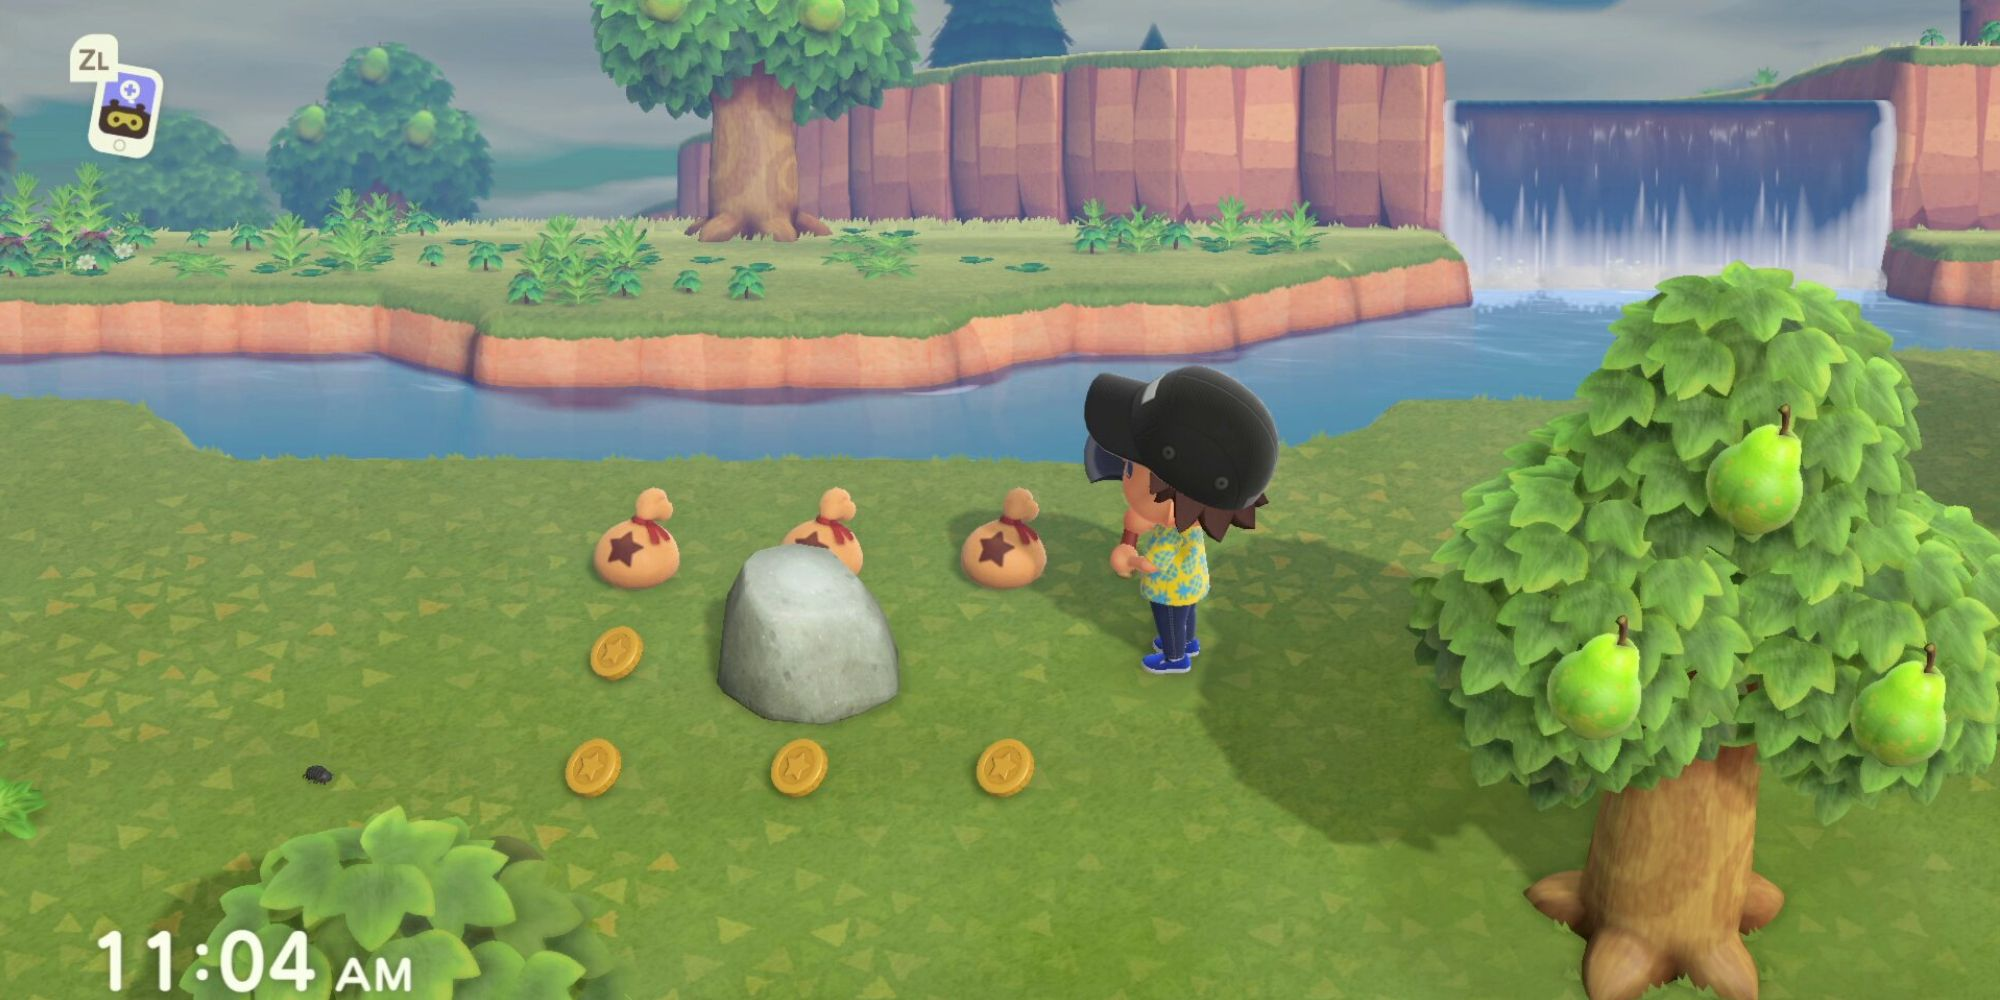 Animal Crossing: New Horizons - 10 Daily Tasks To Complete Every Day